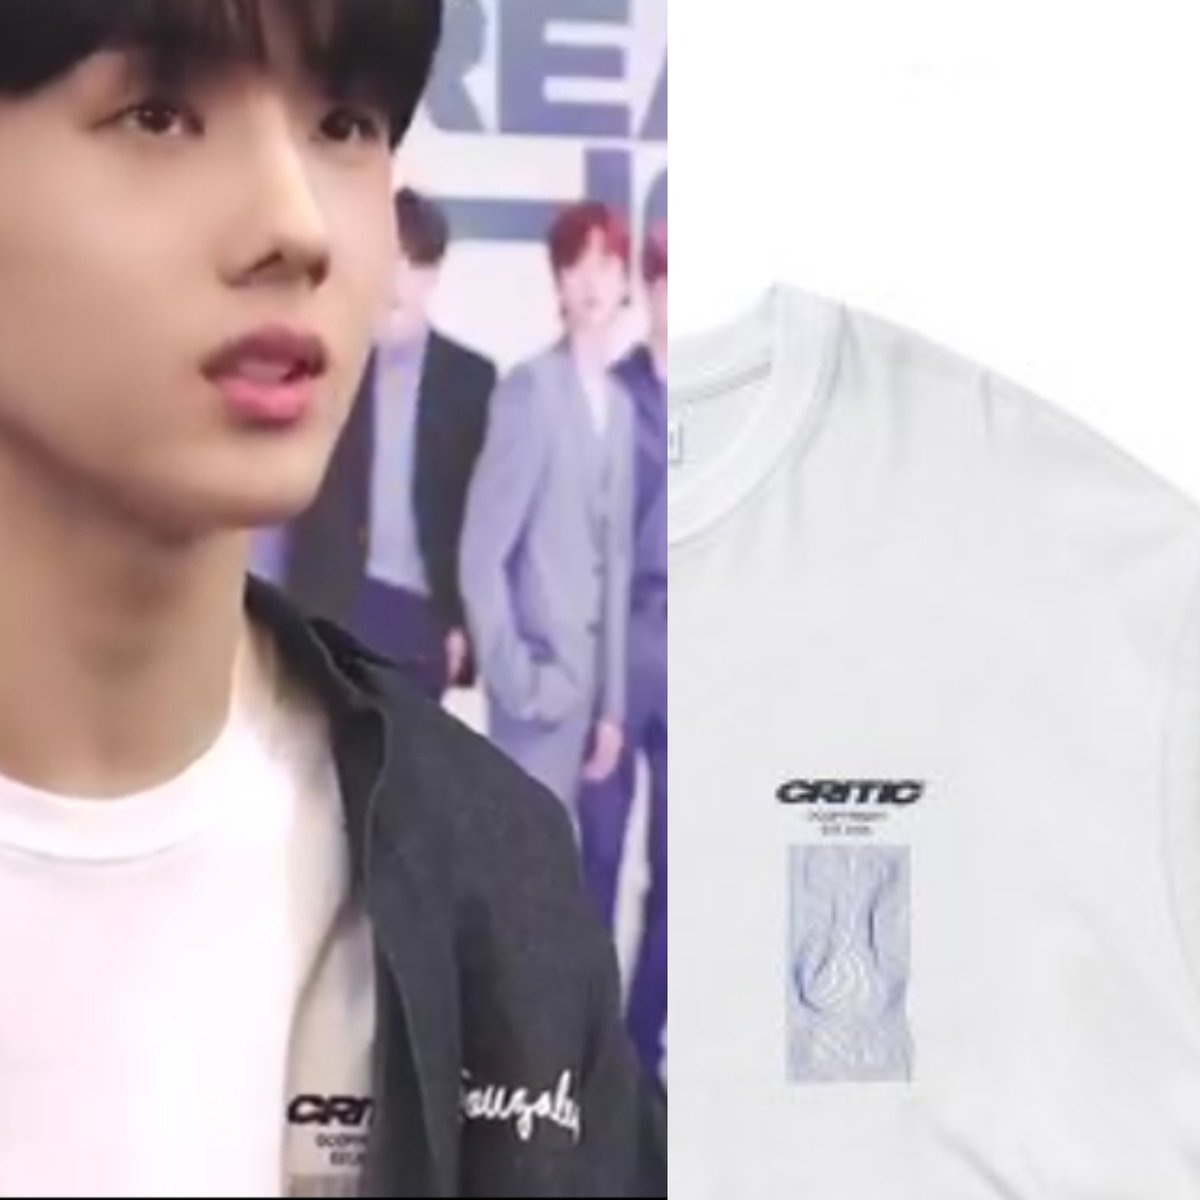 200806 NCT DREAM The Dream Show DVD Kit - 💚💙 (P.s : REPOST WITHOUT PERMISSION ❌) MARK GONZALES - Painted Box Logo Shirt Denim = ₩ 69,000 CRITIC - Wave Graphic Long Sleeve T-Shirt = ₩ 45,000_2